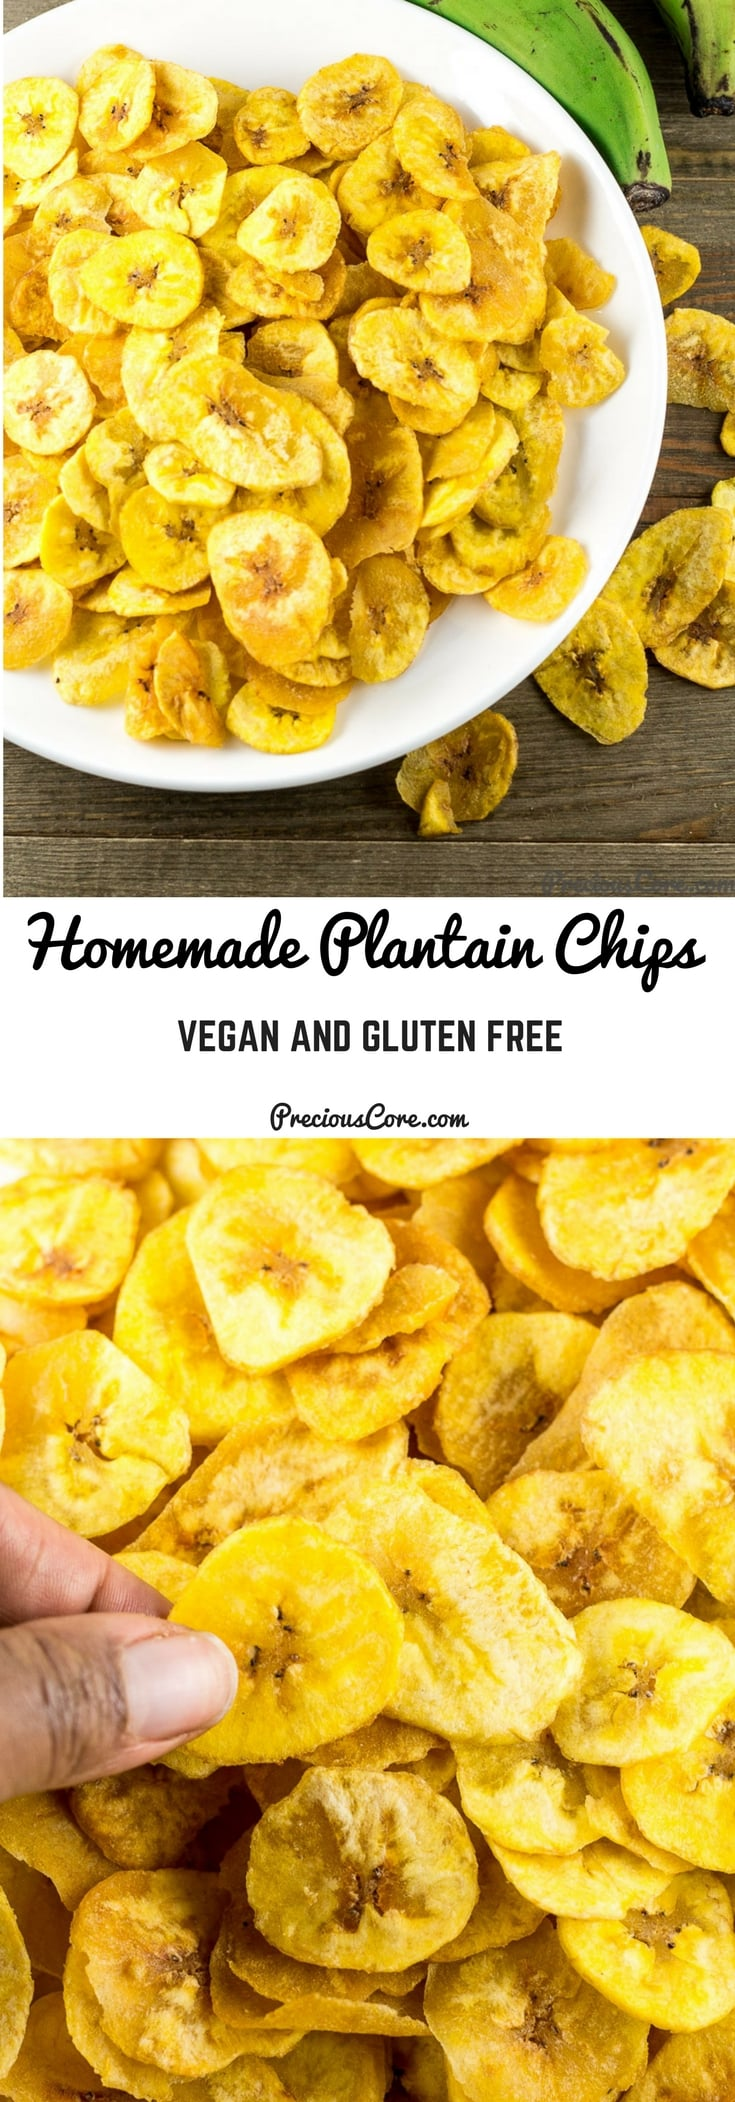 These homemade plantain chips are extra crispy, so tasty and so good! Also, they are vegan and gluten free. The perfect snack to indulge in! Get the recipe on Precious Core. #plantains #vegan #glutenfree